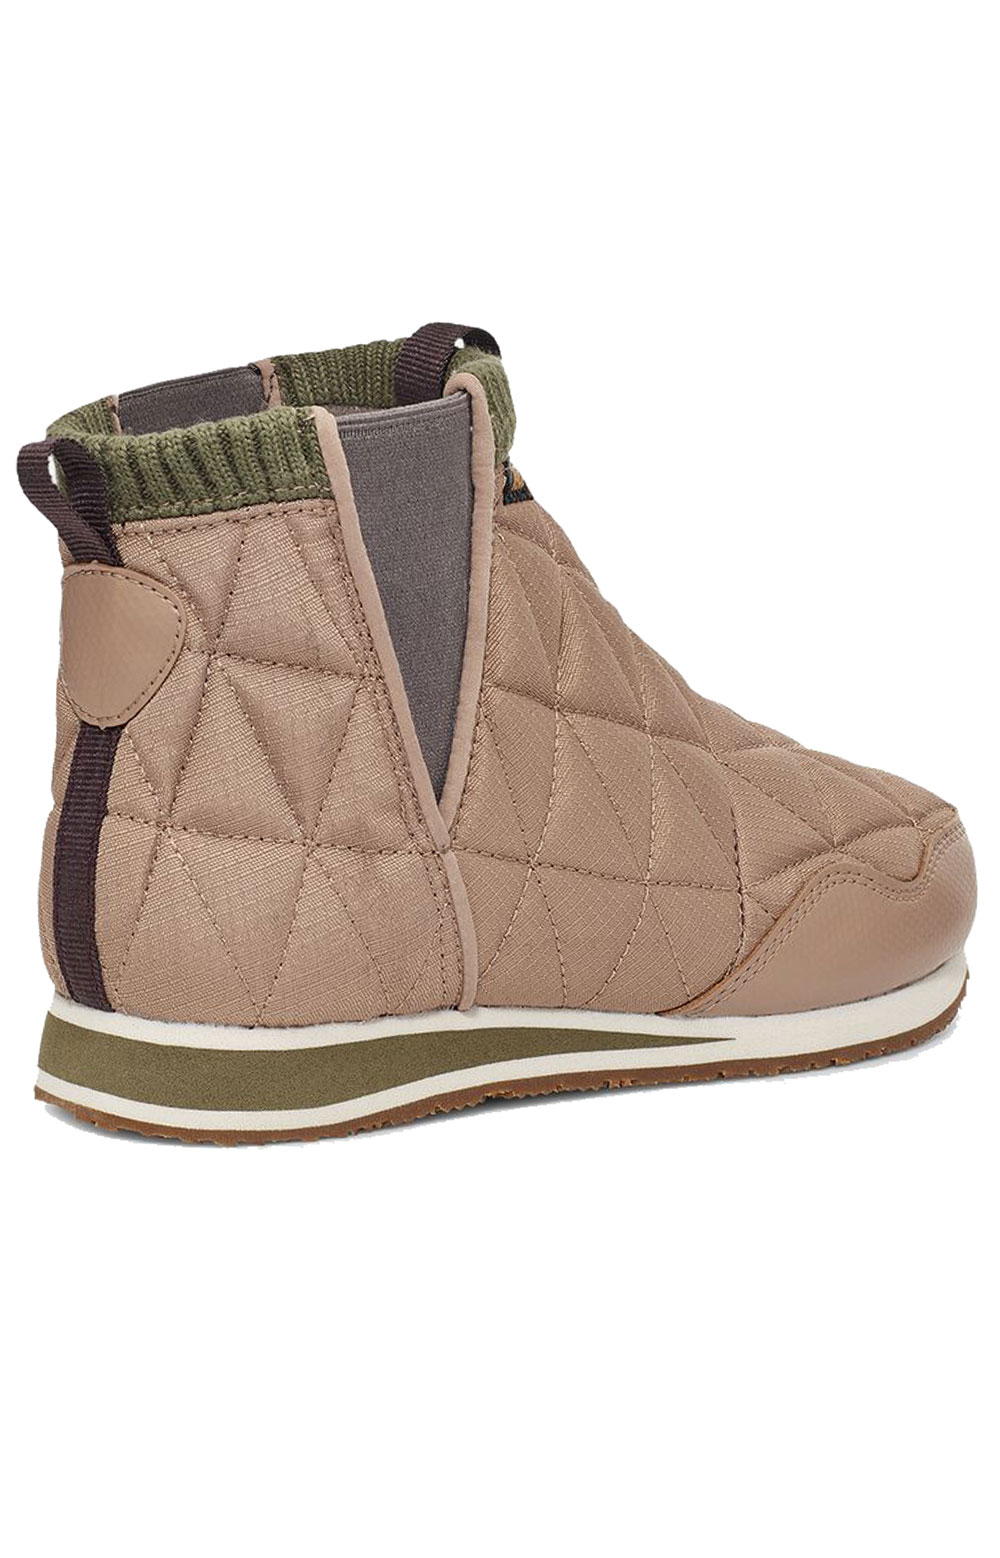 (1123431) ReEMBER Mid Shoes - Macaroon/Olive 4